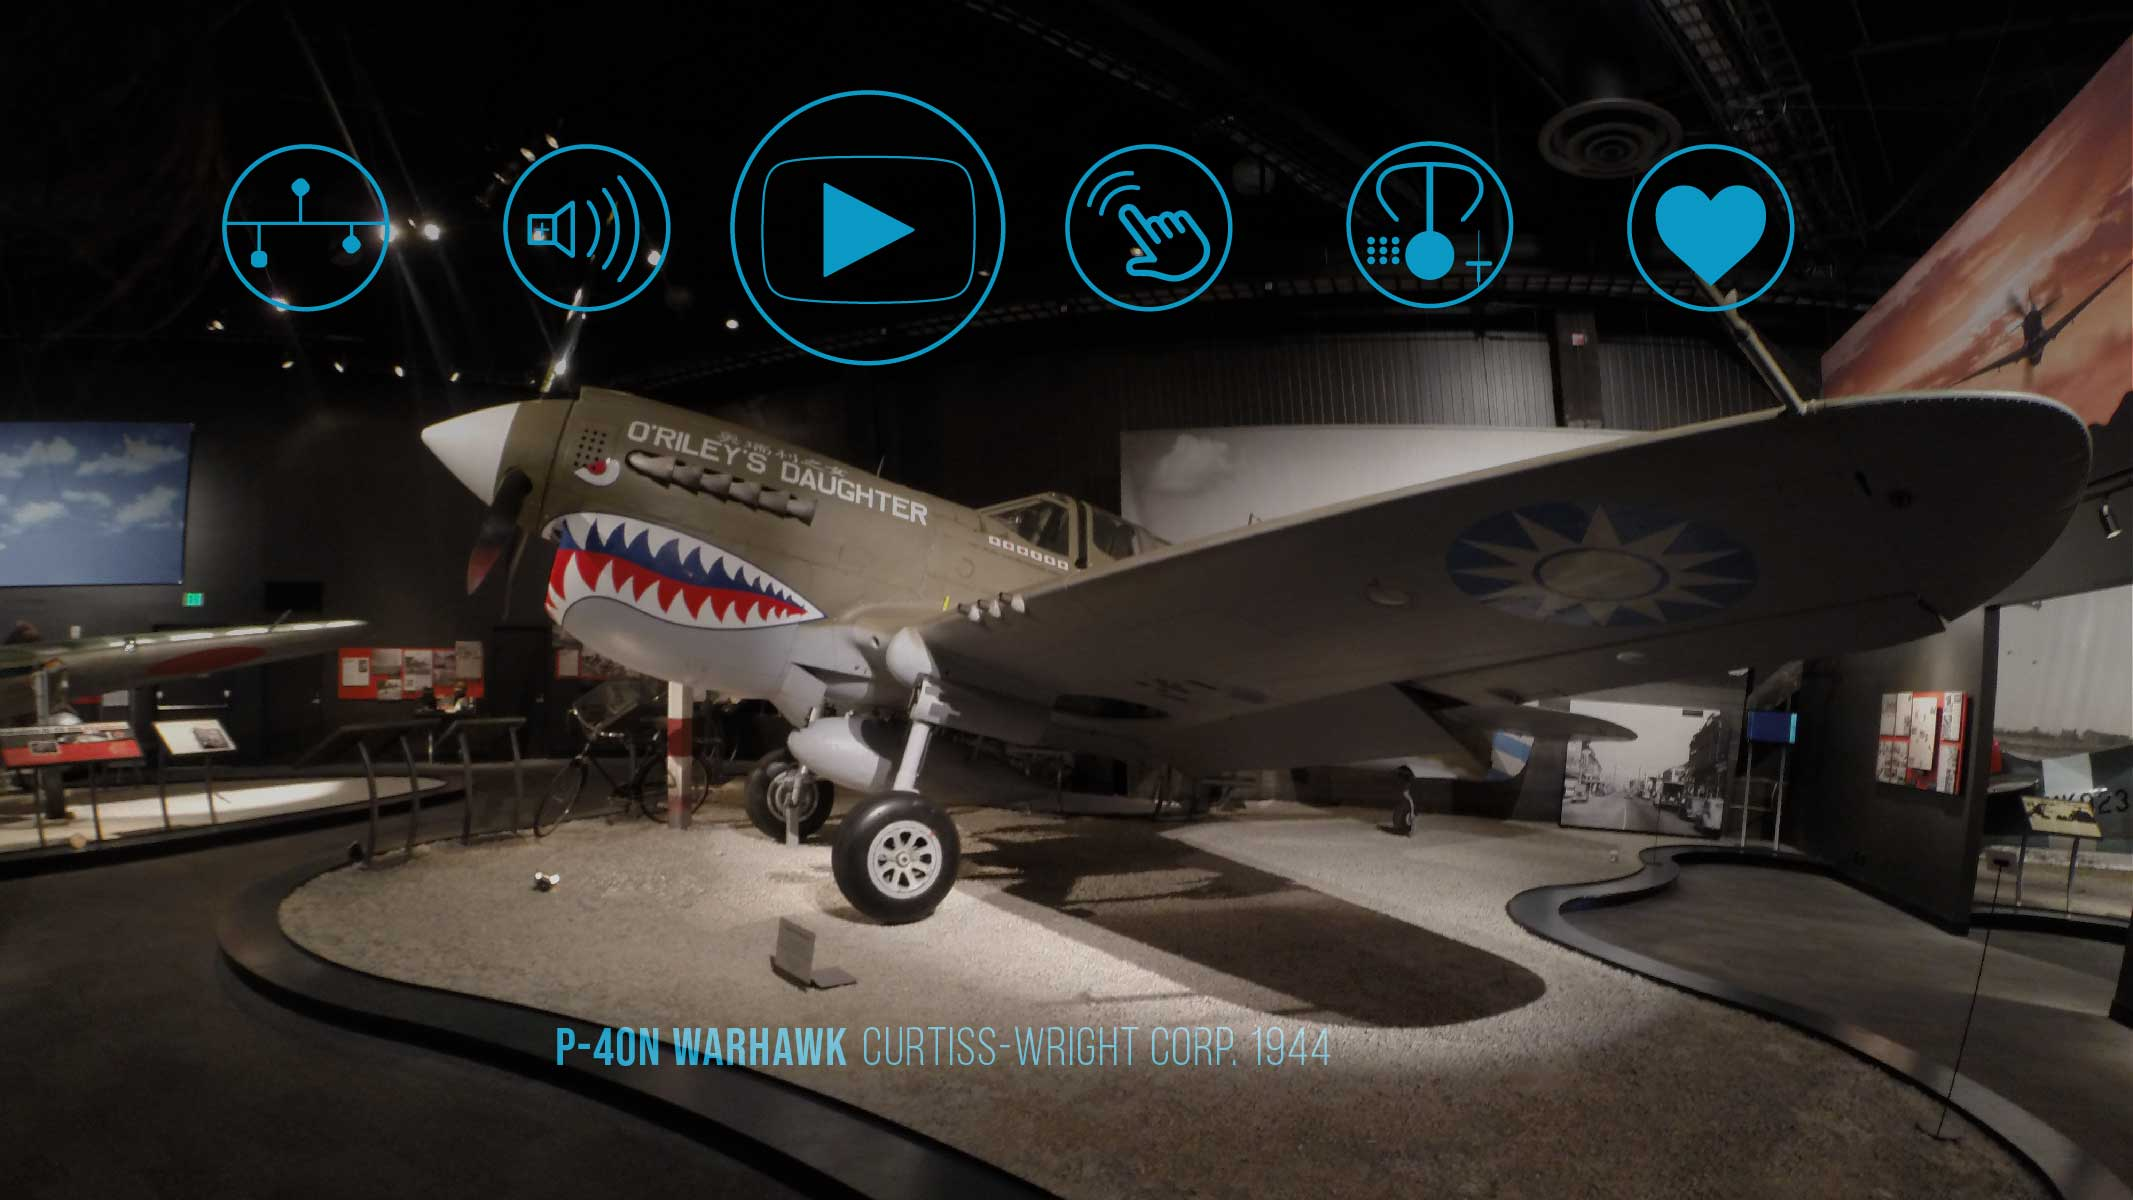 a mock-up image of the active/open state of the FARTHER AR exhibit interface overlayed on an exhibit at the Museum of Flight